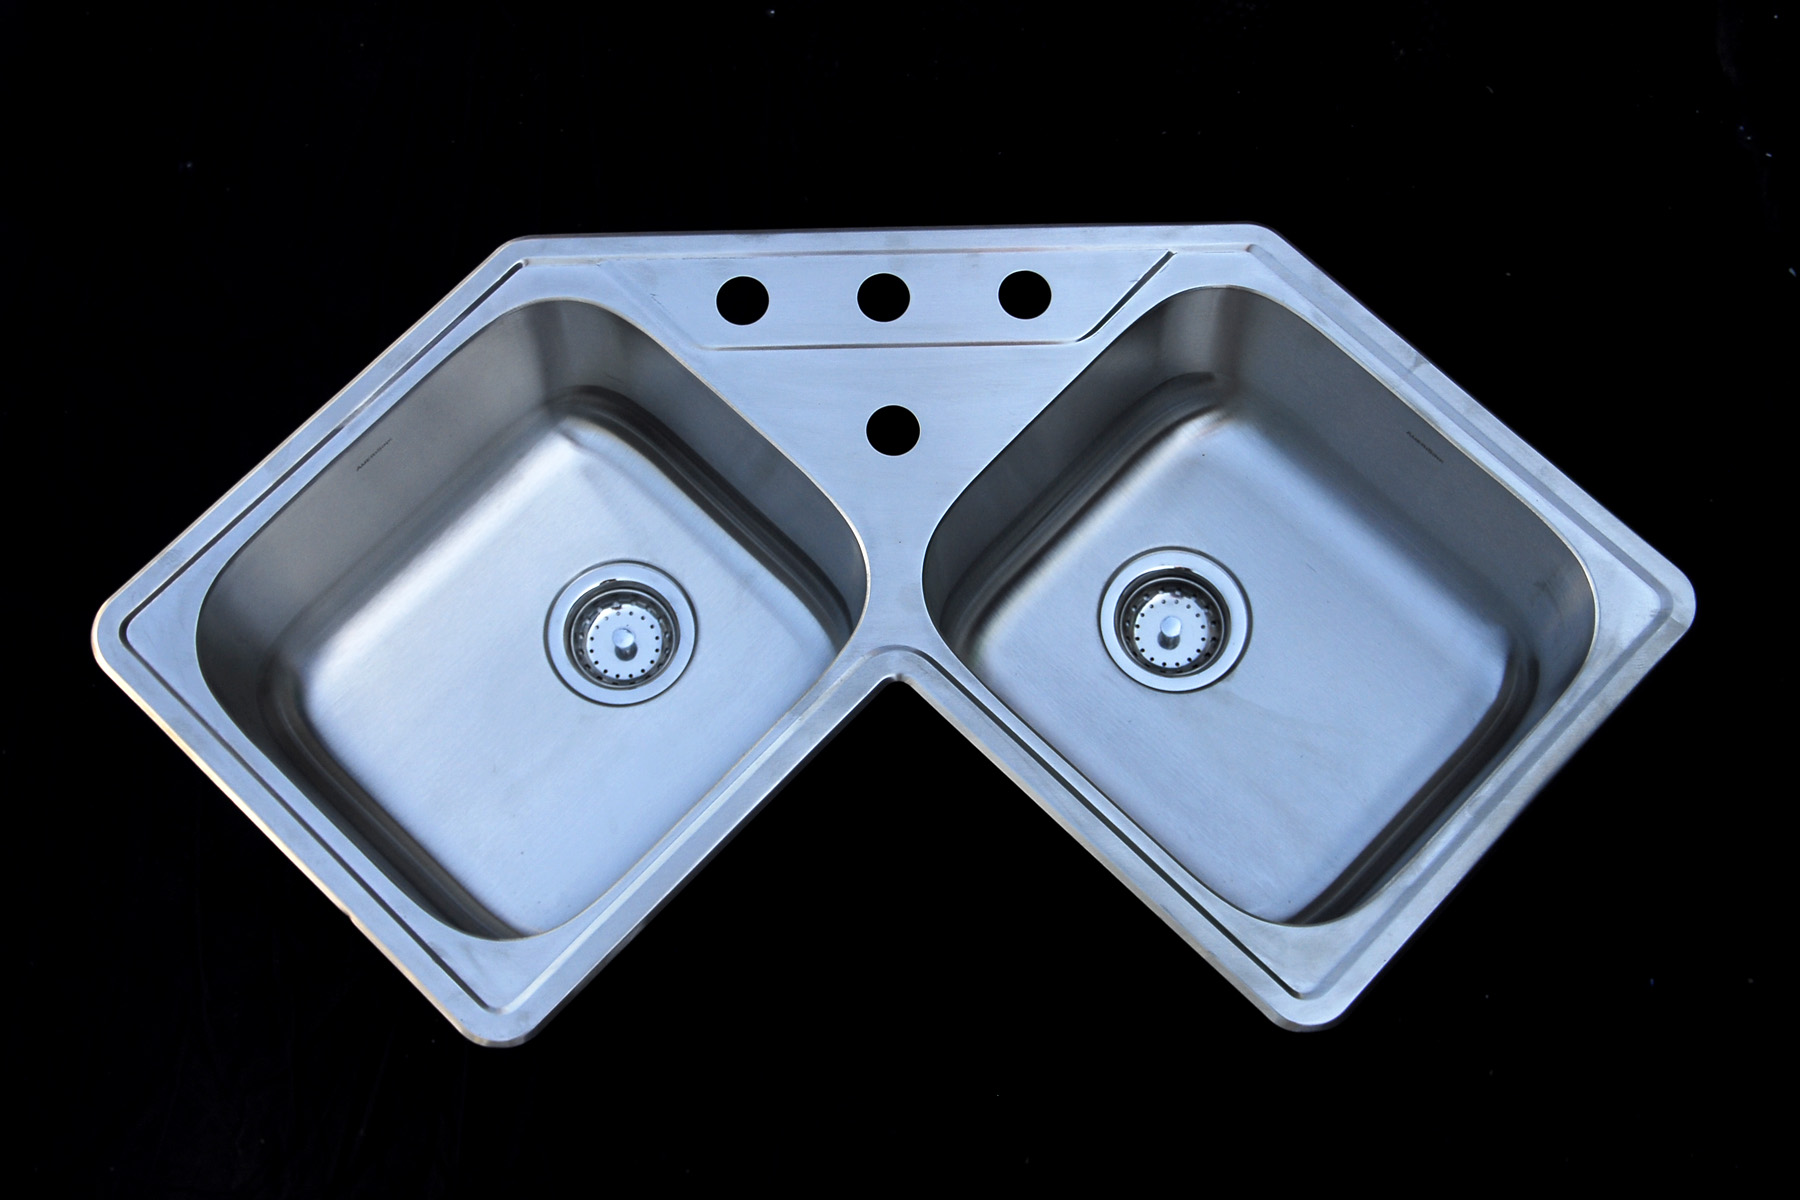 As139 32 X 32 X 8 8 18g Double Bowl Topmount Trend Stainless Steel Corner Kitchen Sink Amerisink